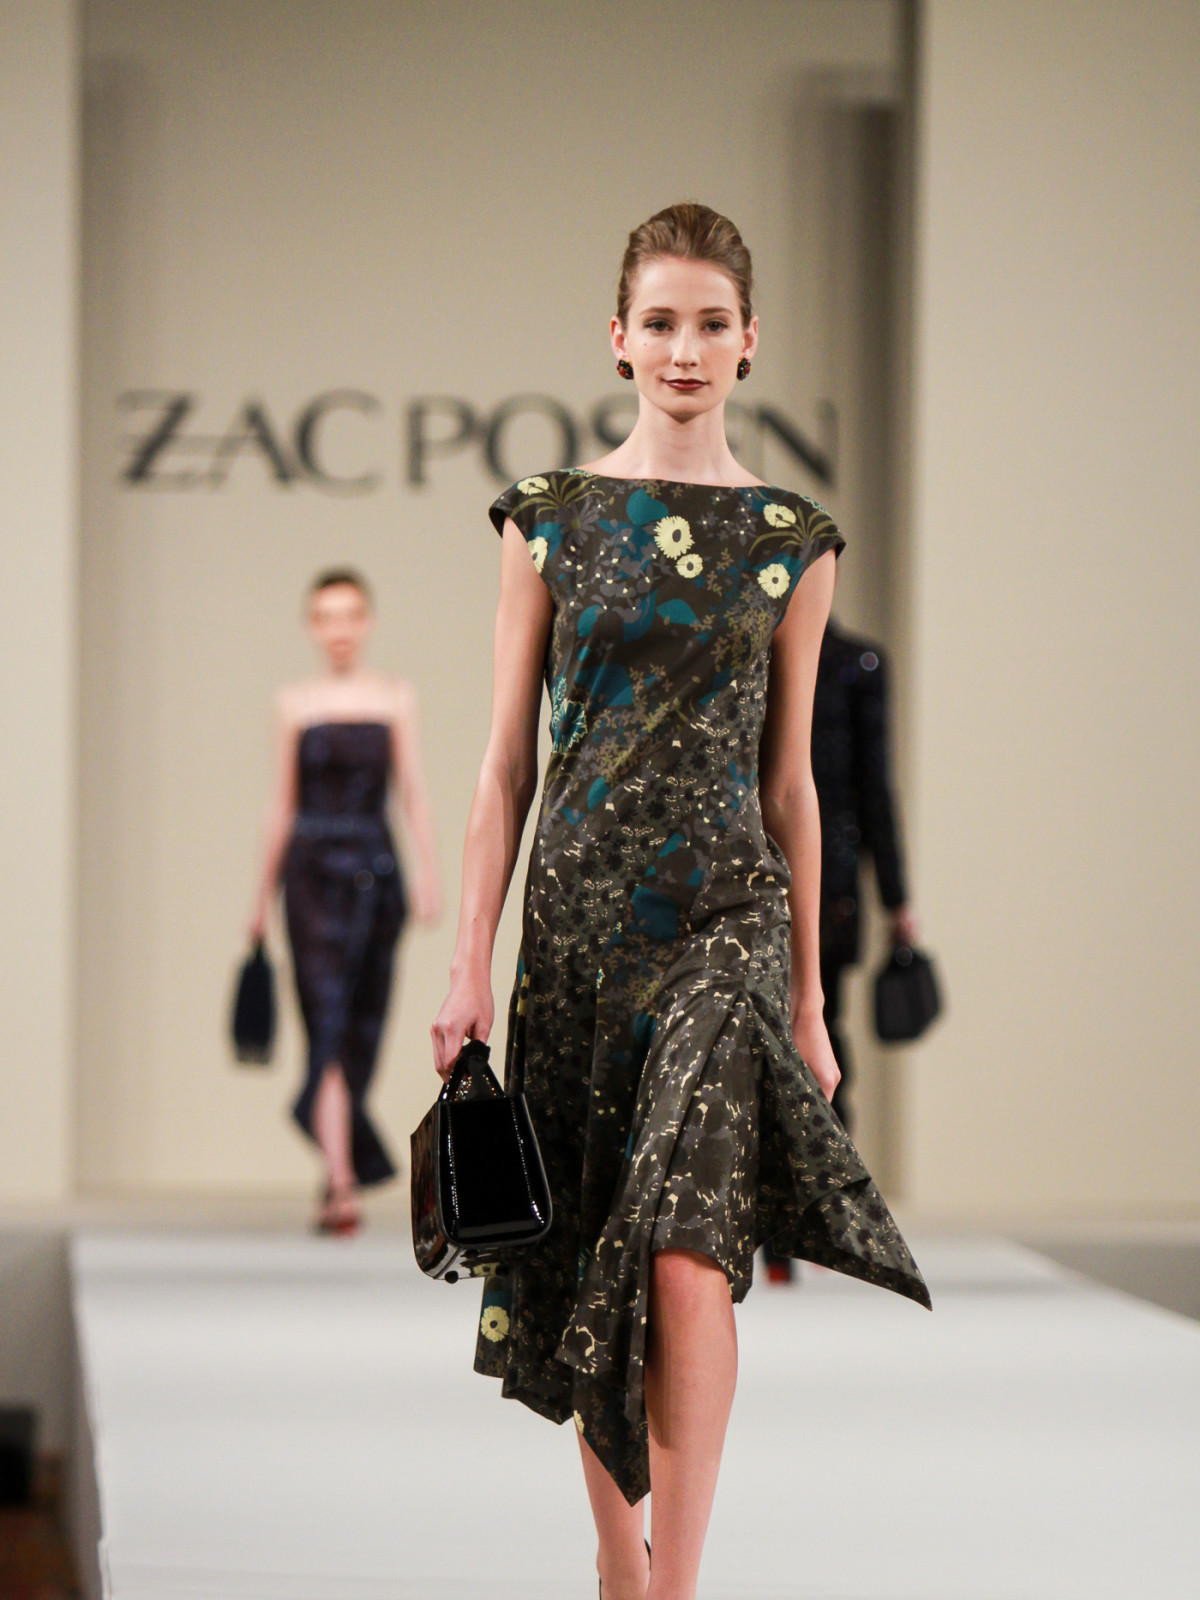 Zac heads posen to houston